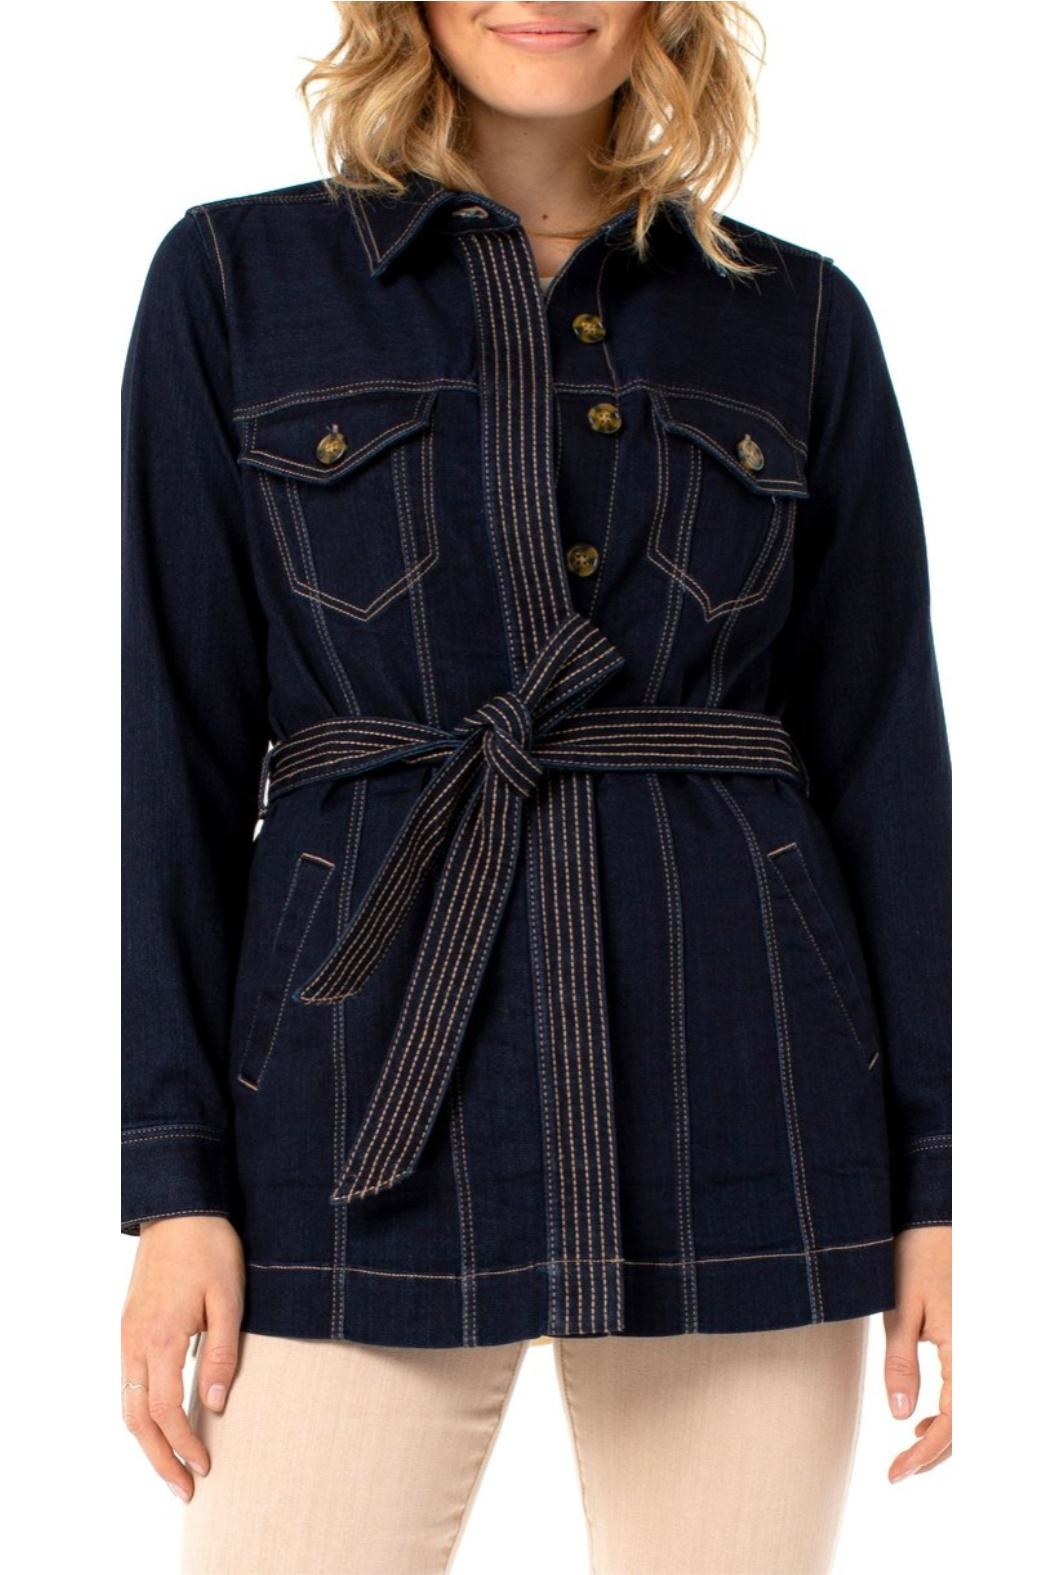 Liverpool Jean Company Belted Long Jacket - Main Image